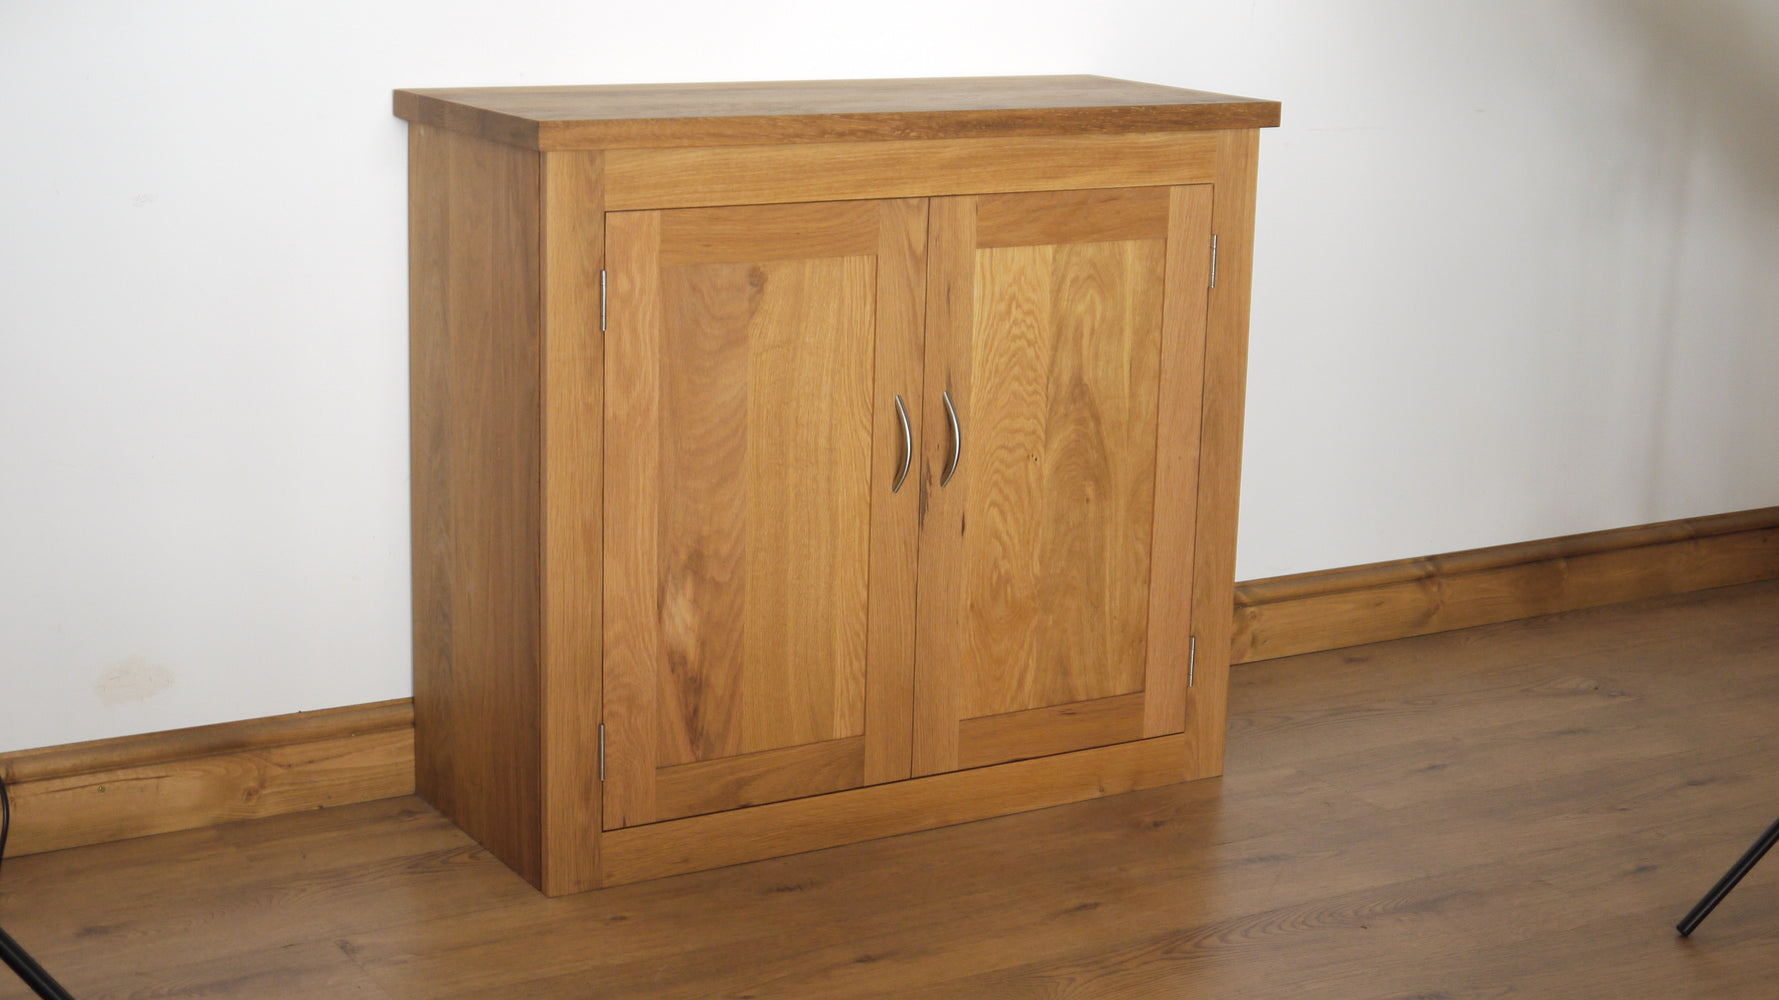 The Quercus Oak Two-Door Sideboard